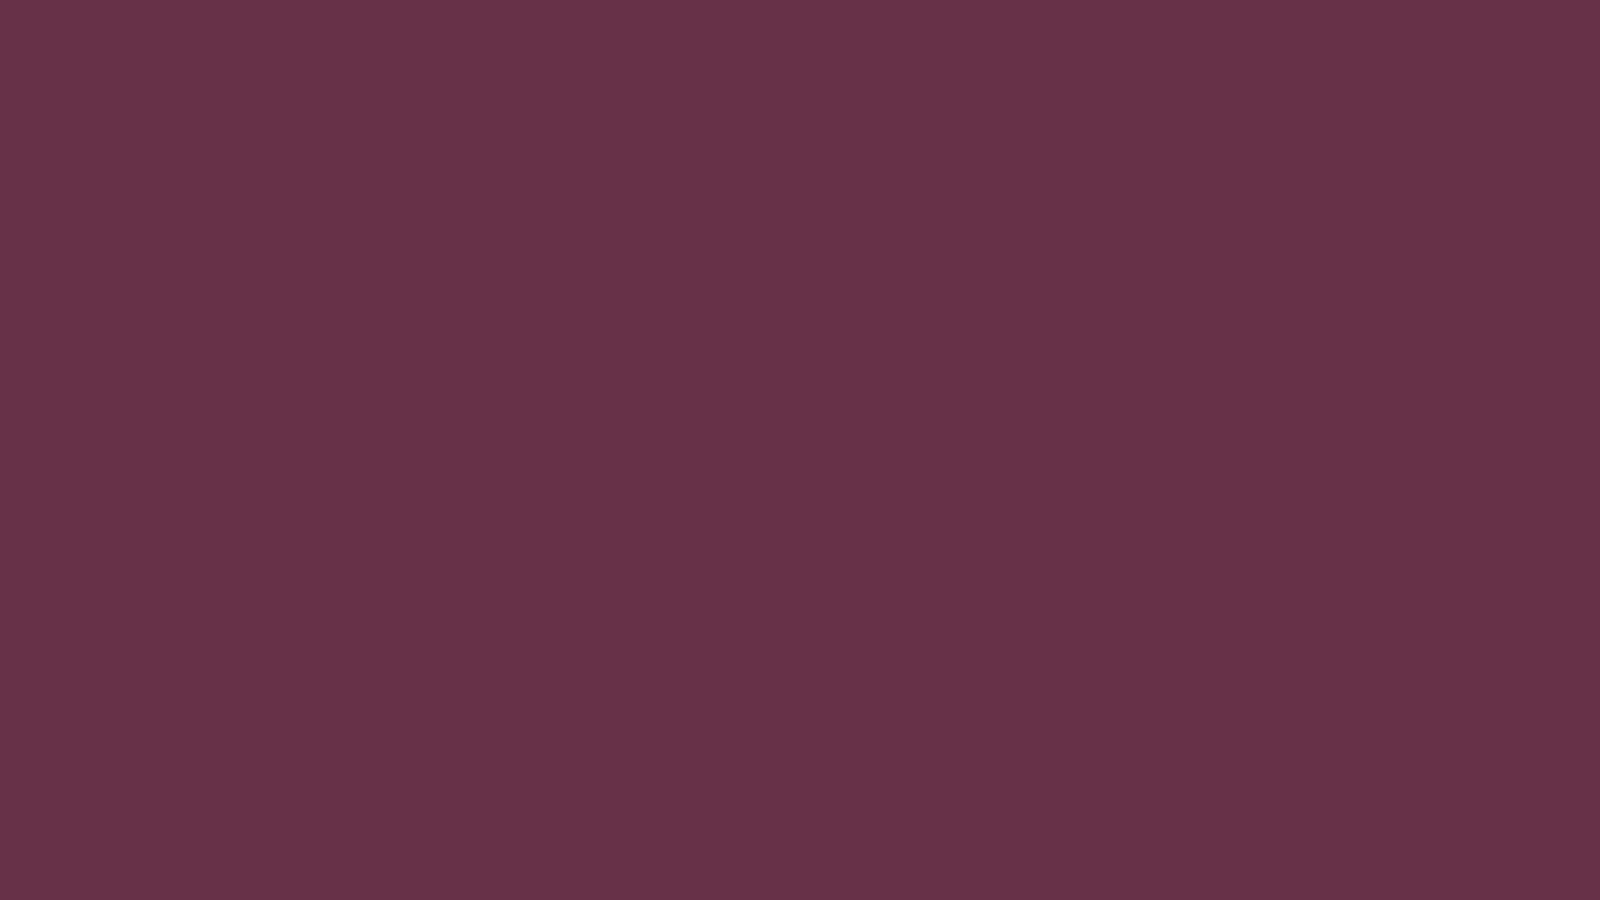 1600x900 Wine Dregs Solid Color Background